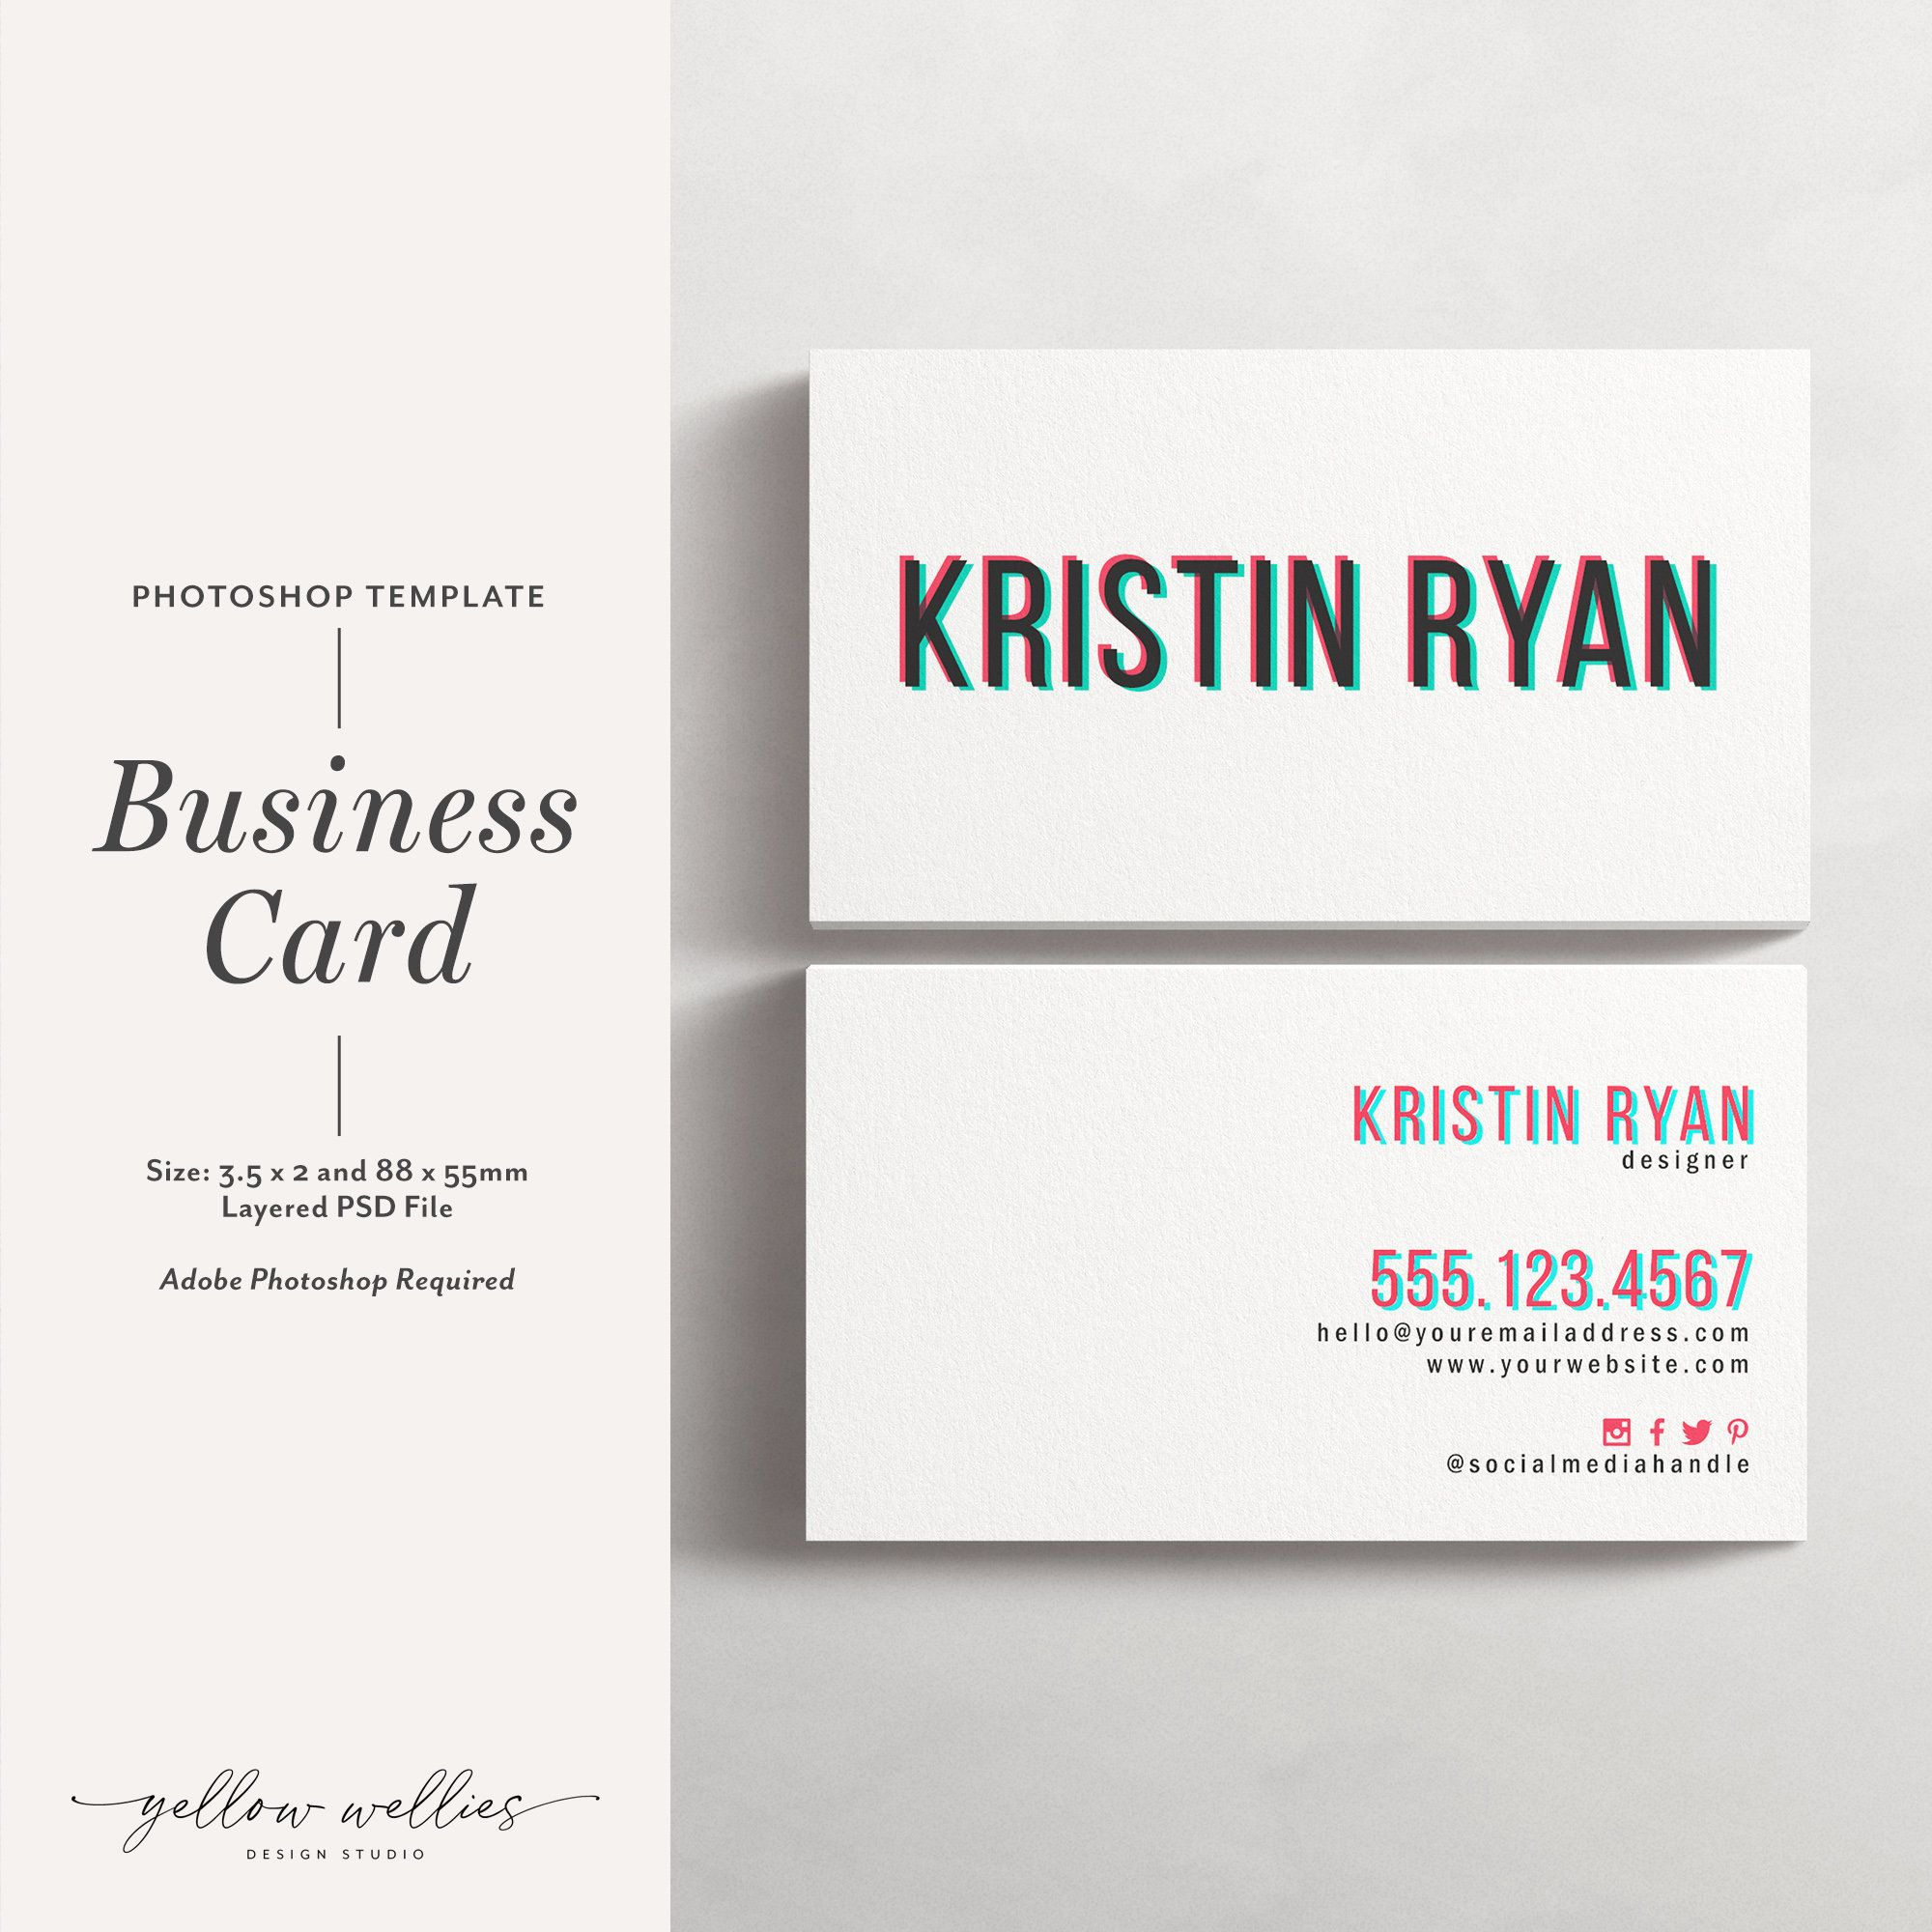 photoshop template business card instant download